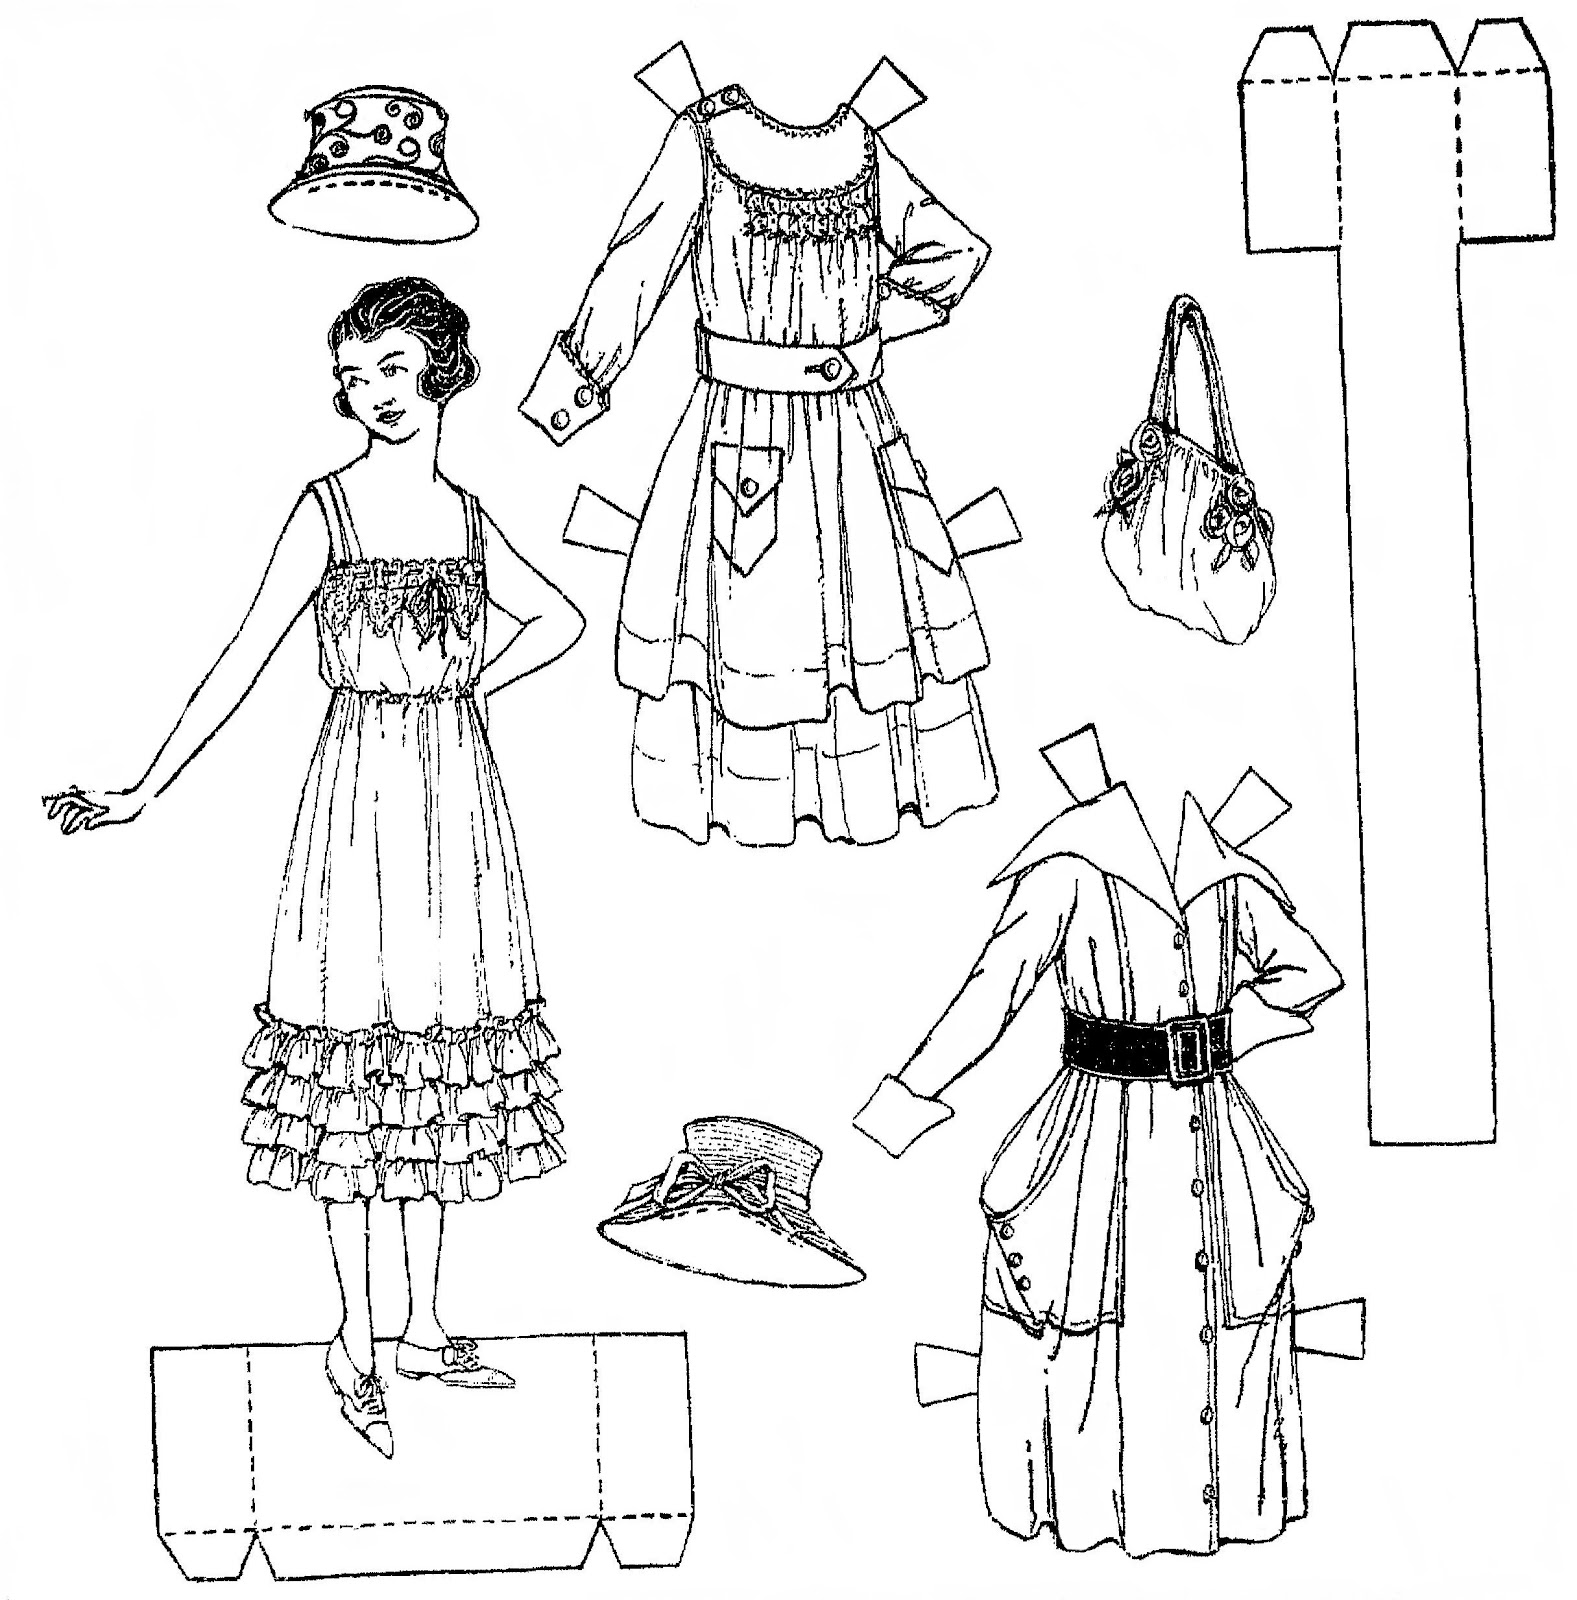 Mostly Paper Dolls: Fashionable Paper Dolls From 1917